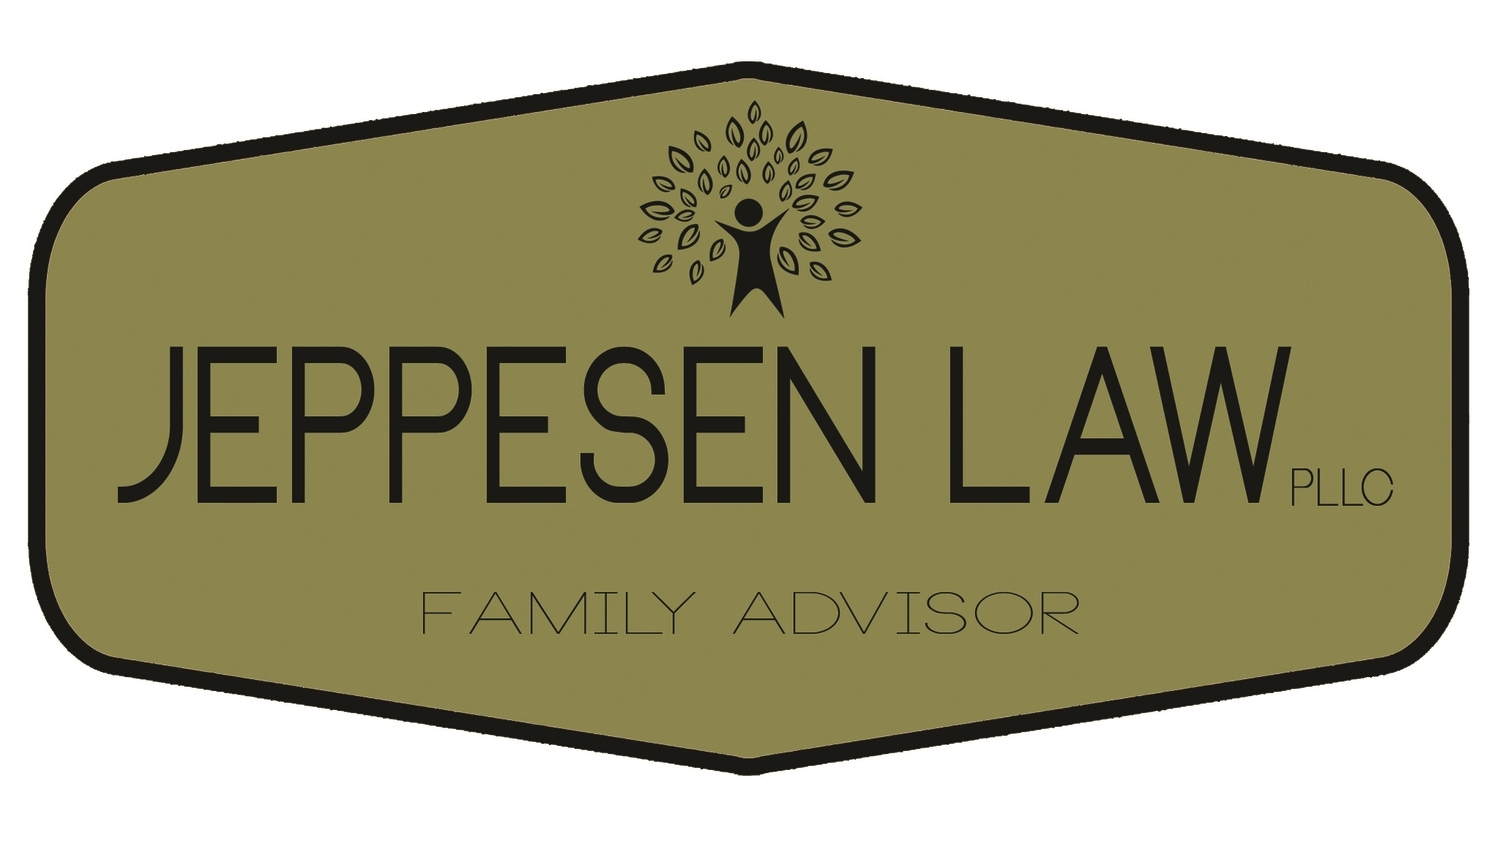 Jeppesen Law